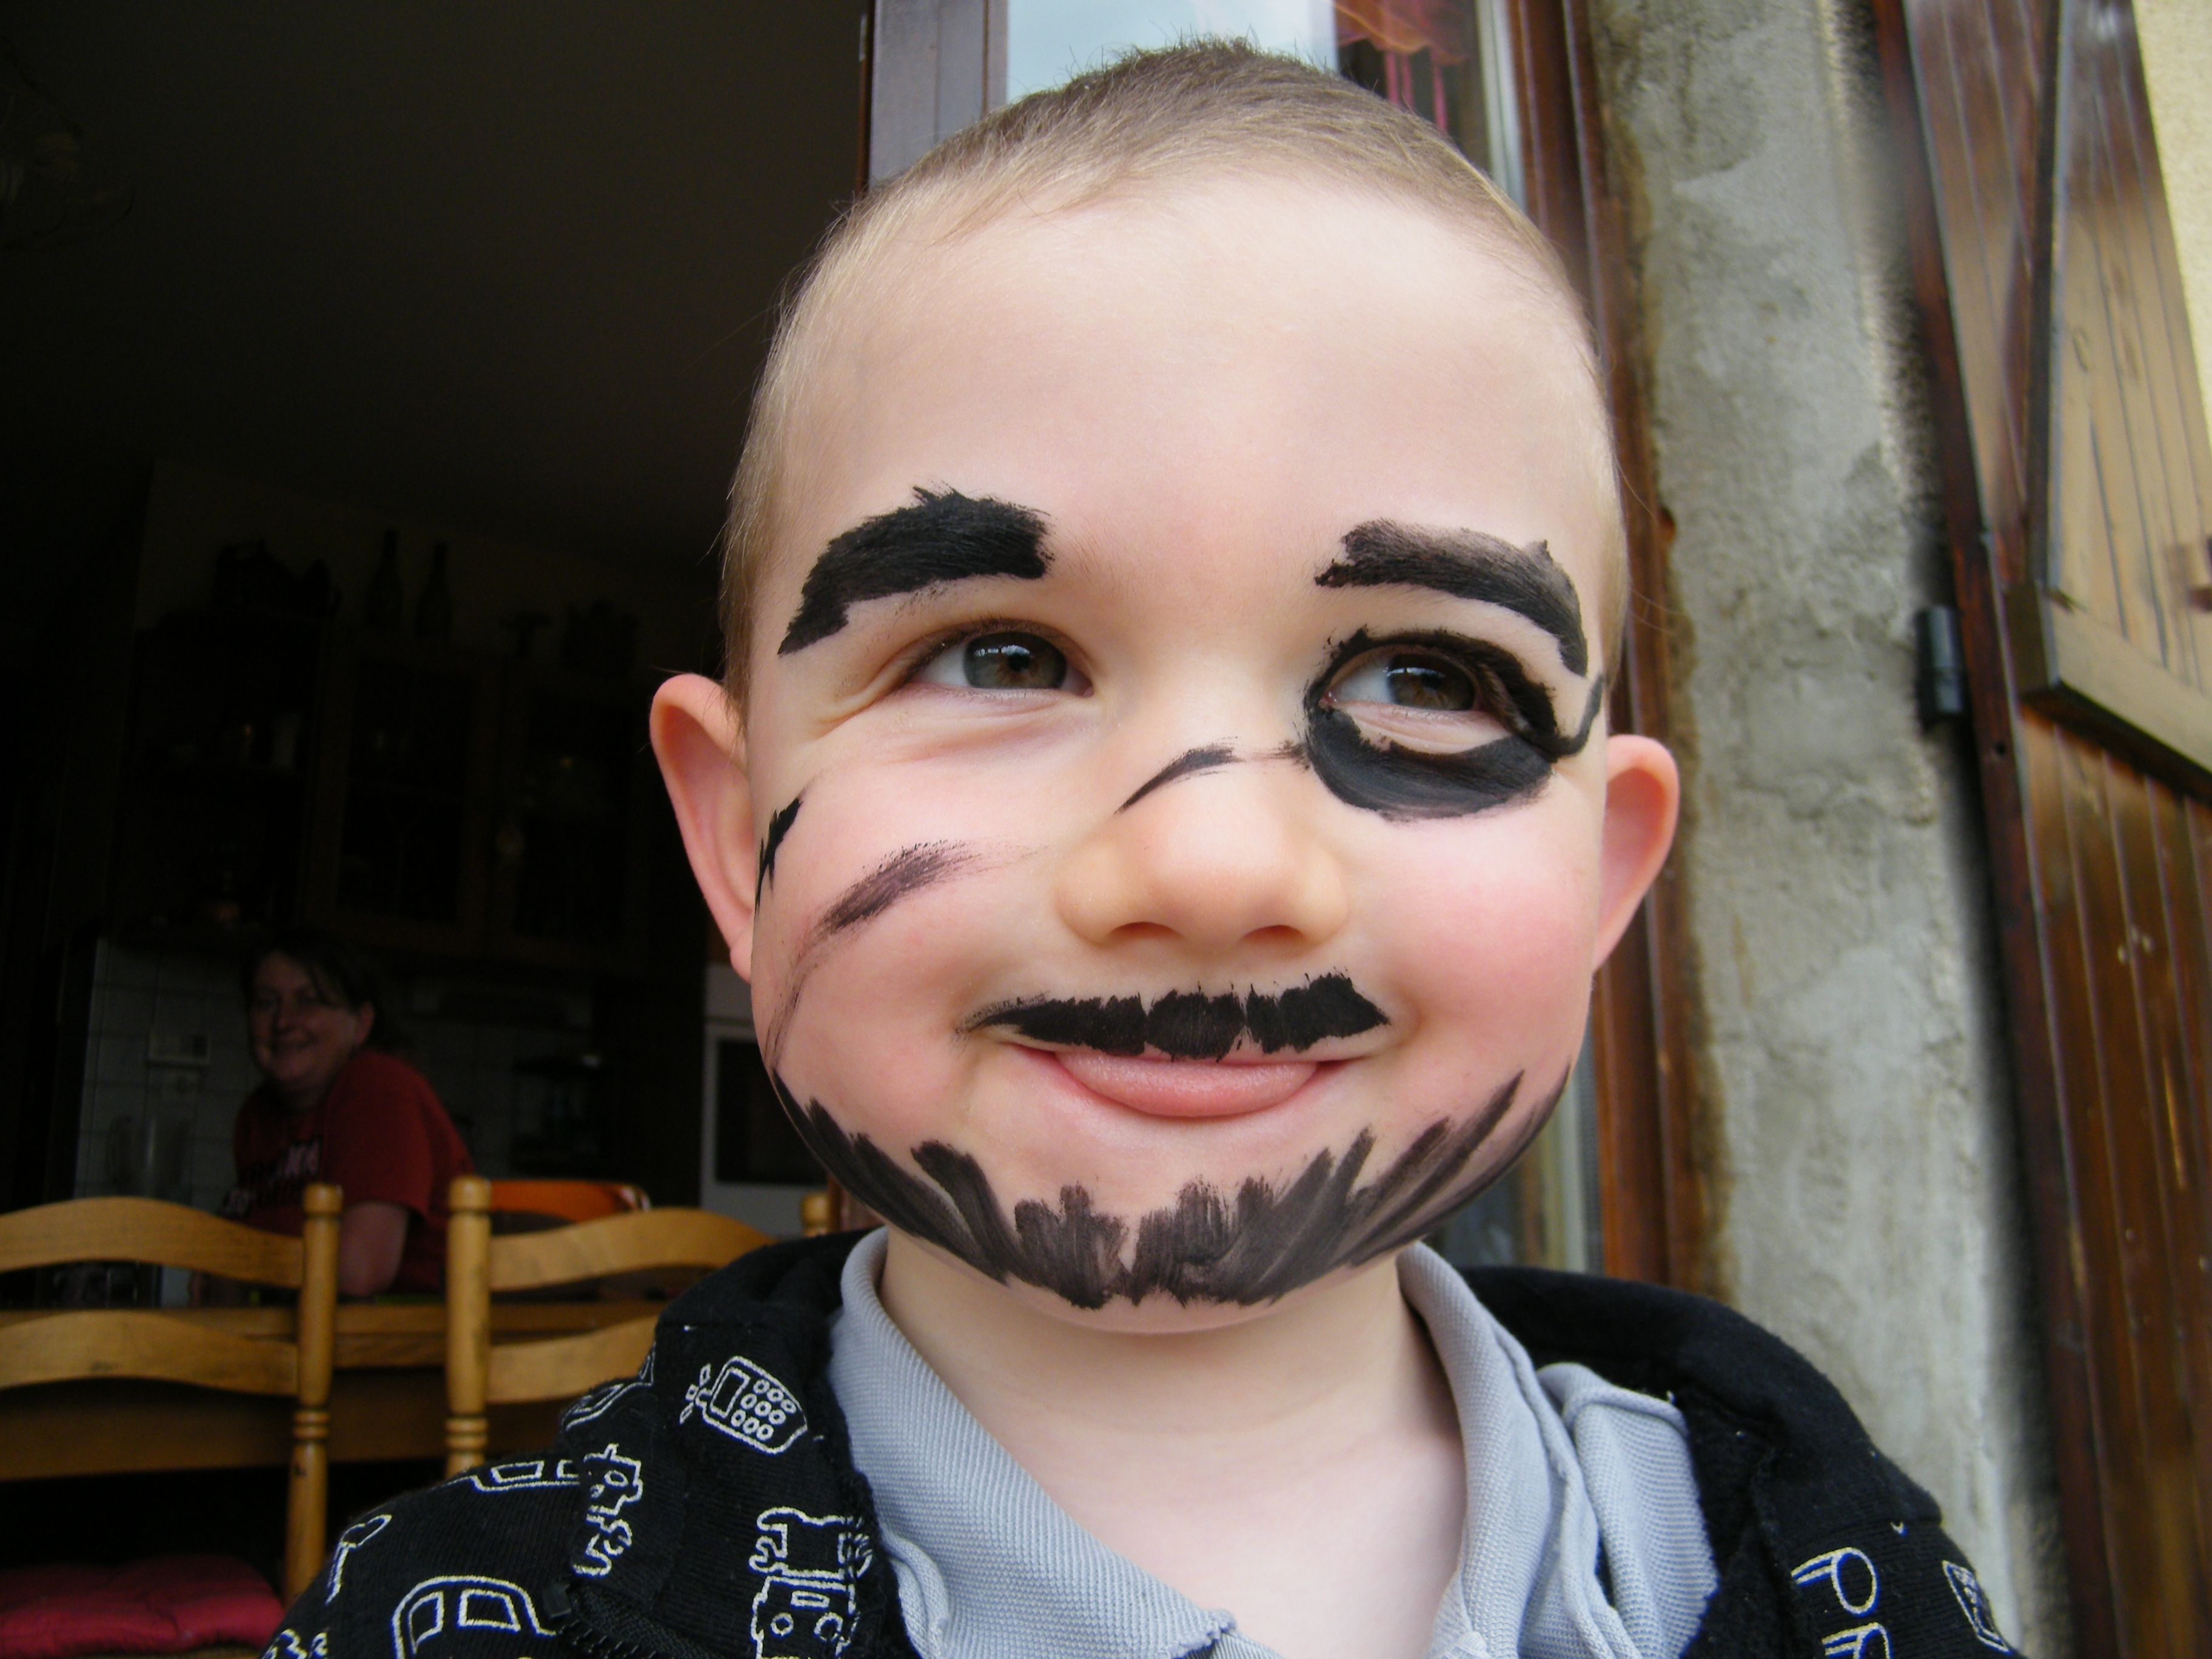 Maquillage pirate - Maquillage pirate fille ...